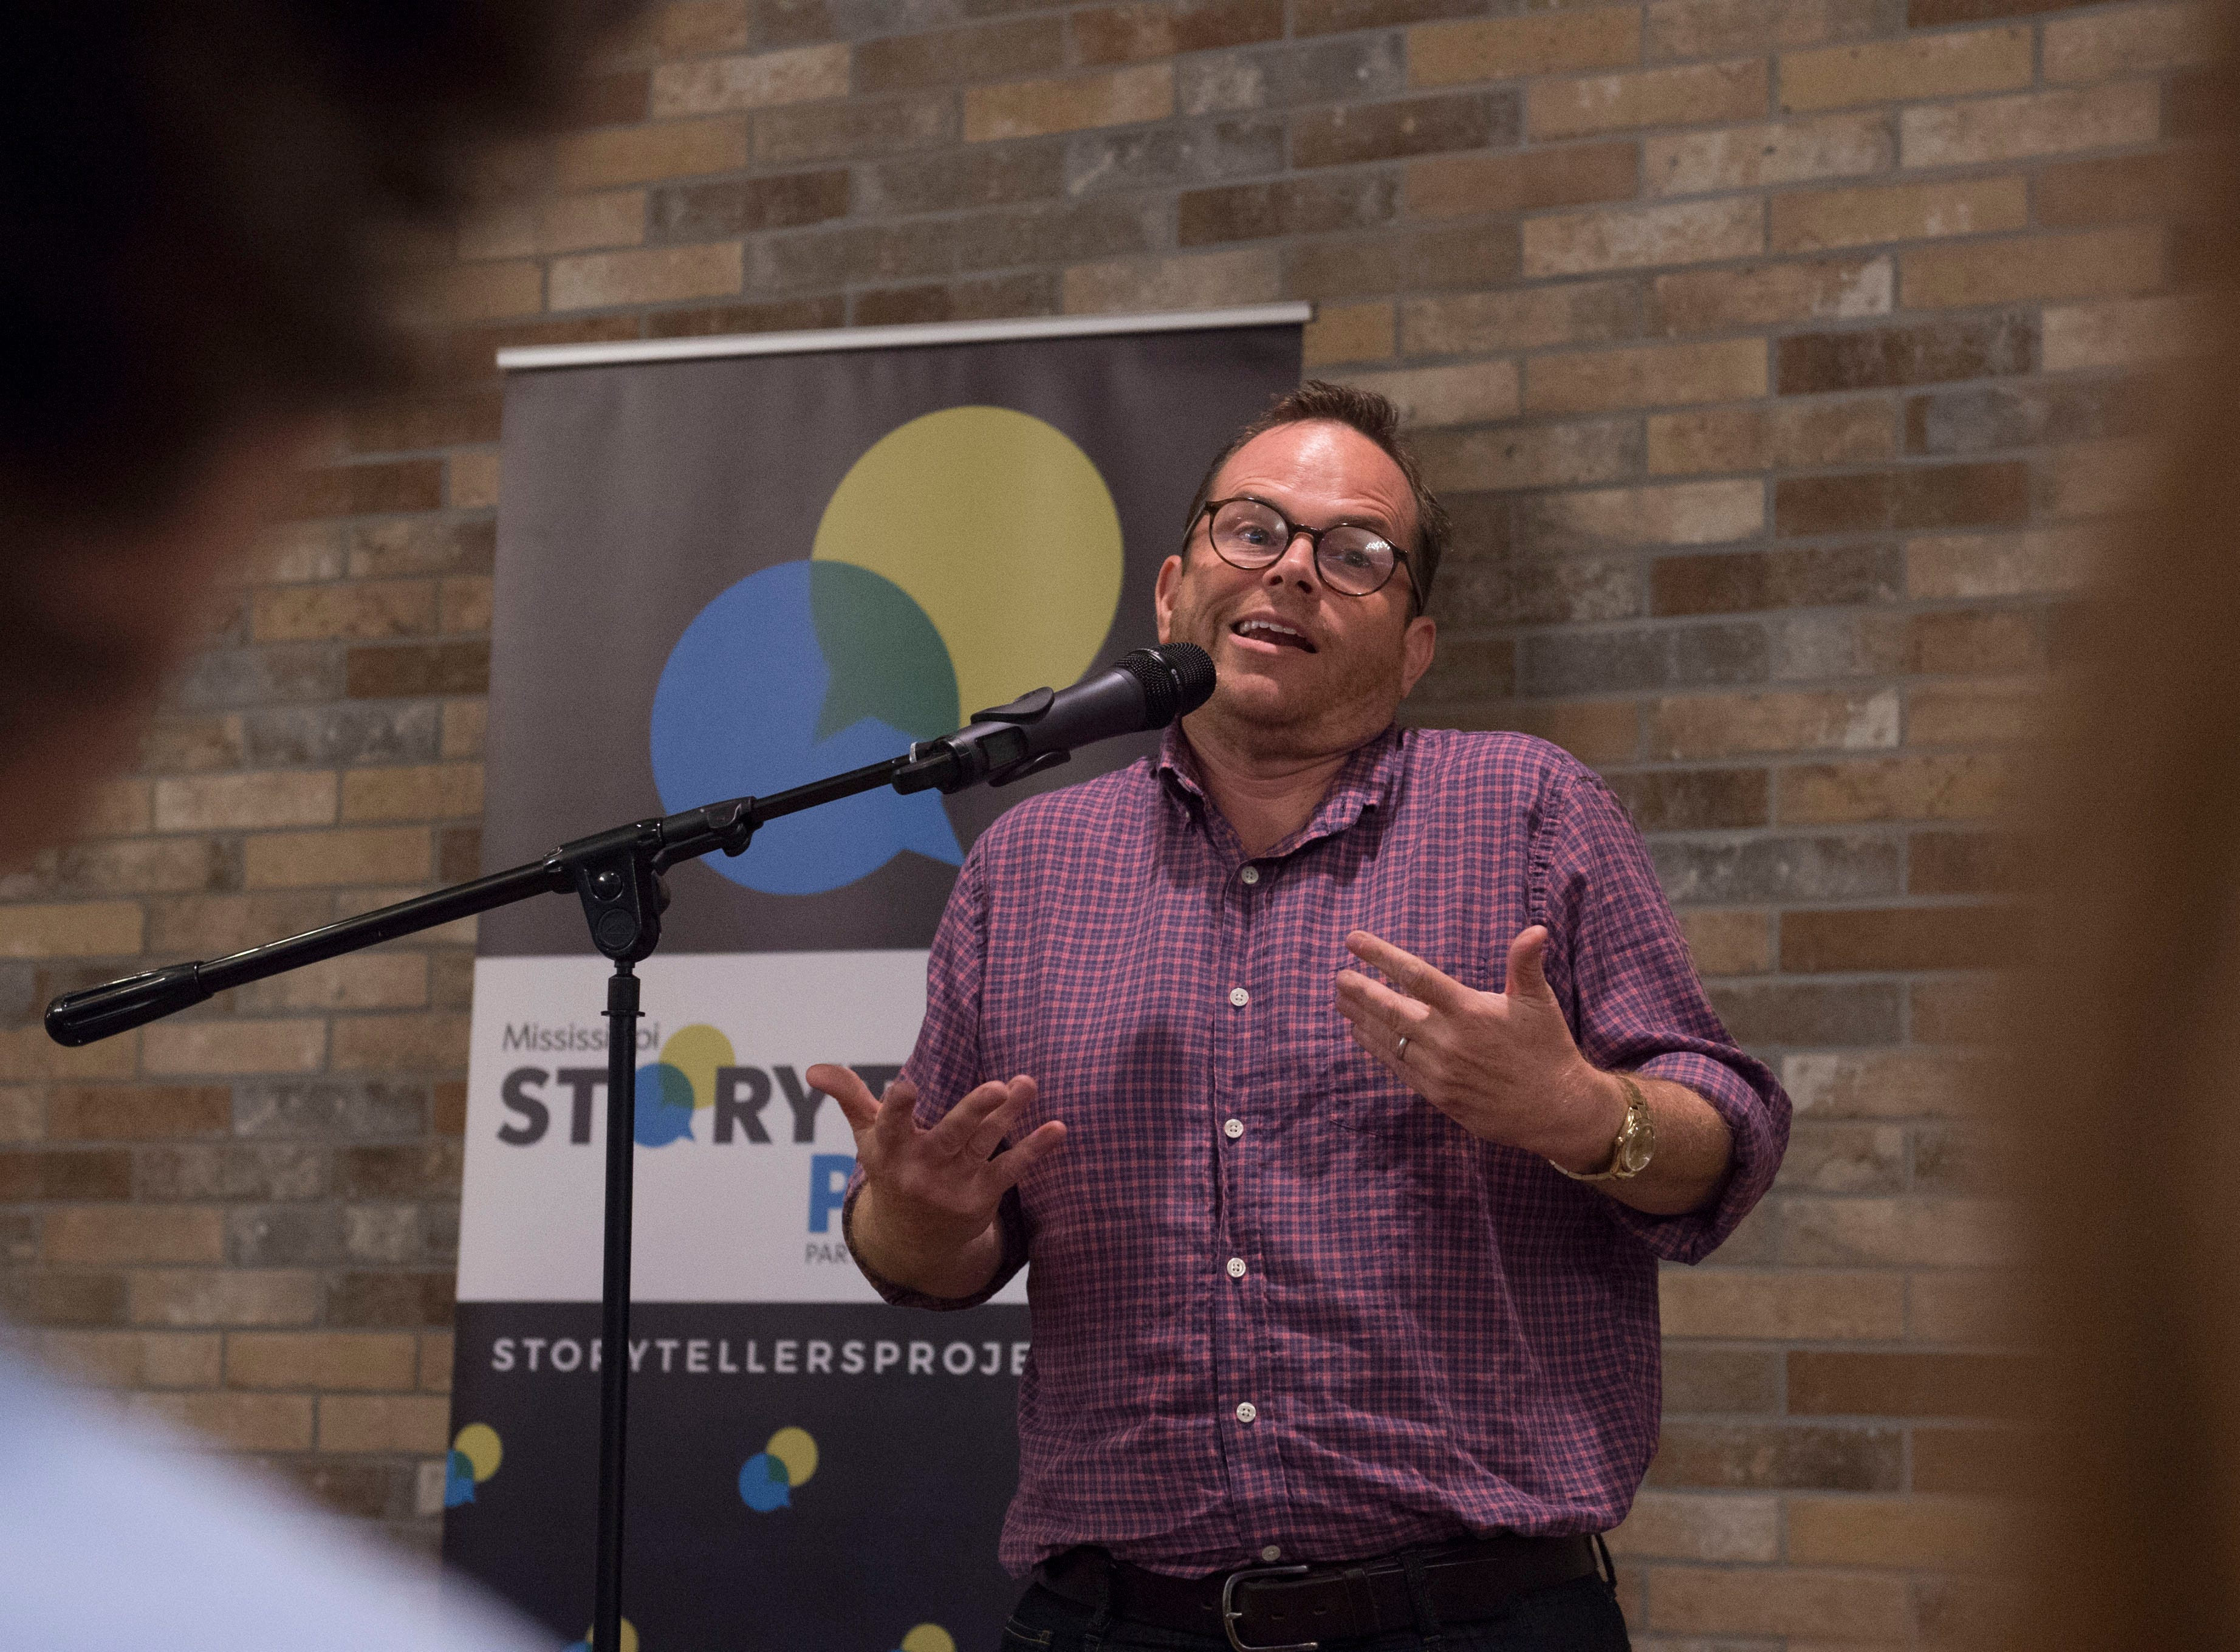 John C. Cox tells about his dad, a Chevron gas card and the lessons they taught during Mississippi Storytellers: Growing Up hosted by Rickhouse in Jackson. Tuesday, Sept. 18, 2018.